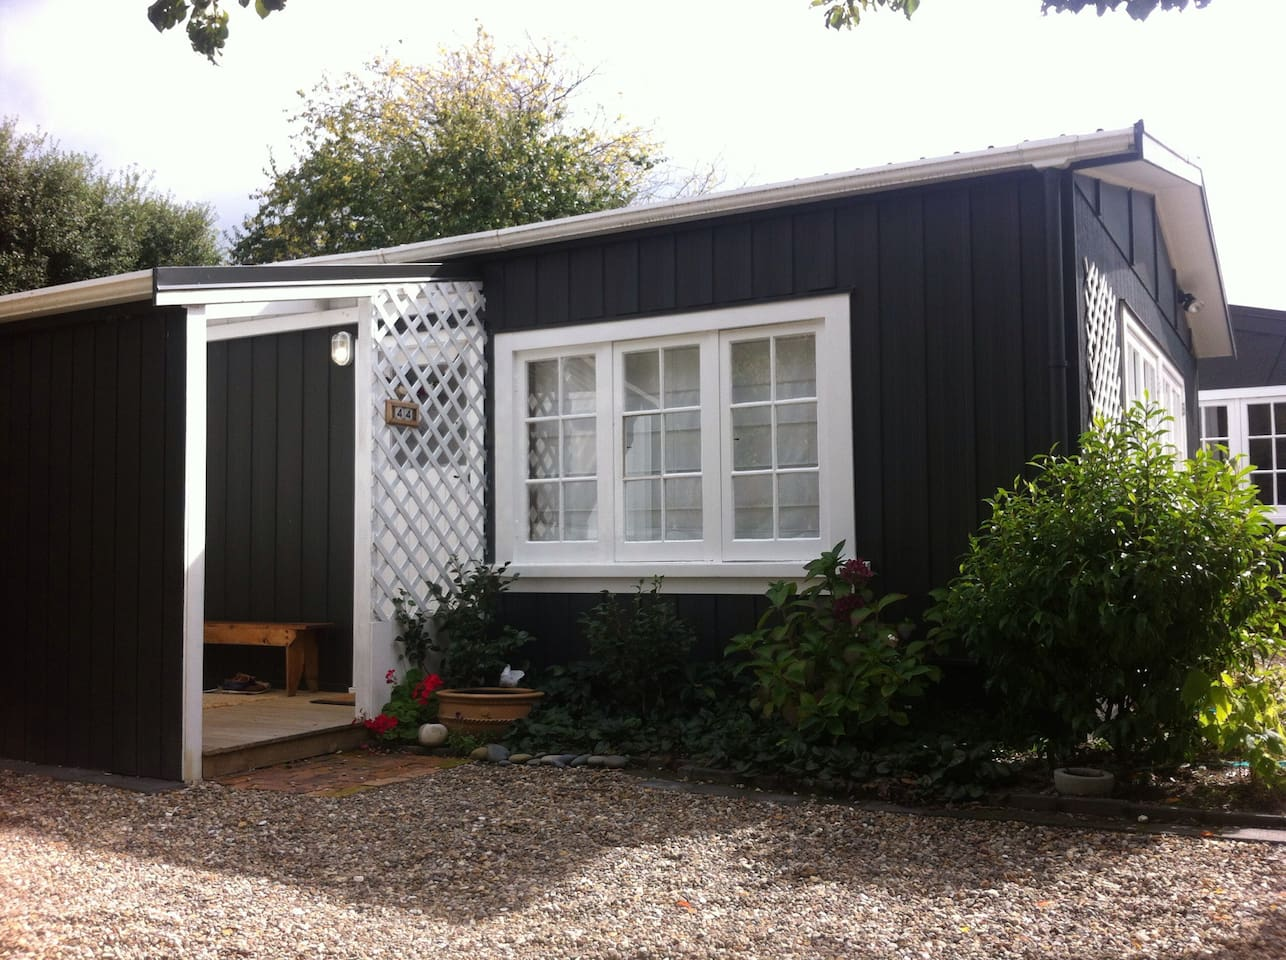 Your private studio entry porch next to the carpark with plenty of room for coats, boots.